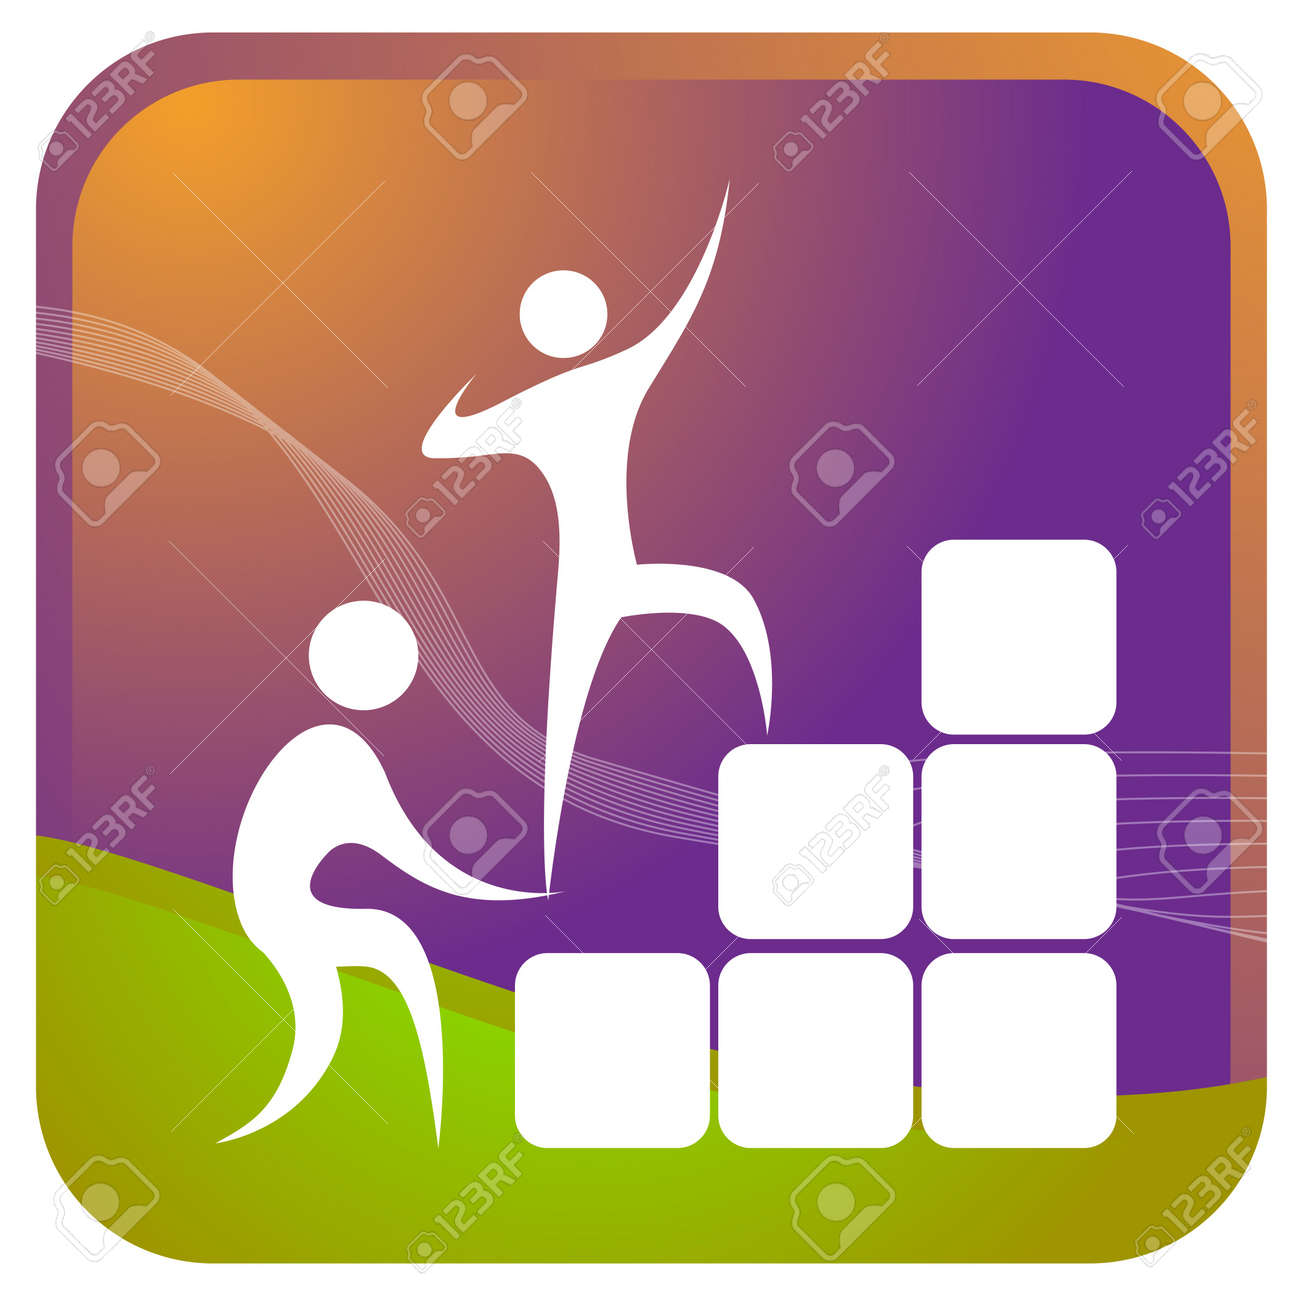 human helping each other to climb up the blocks Stock Vector - 7596908